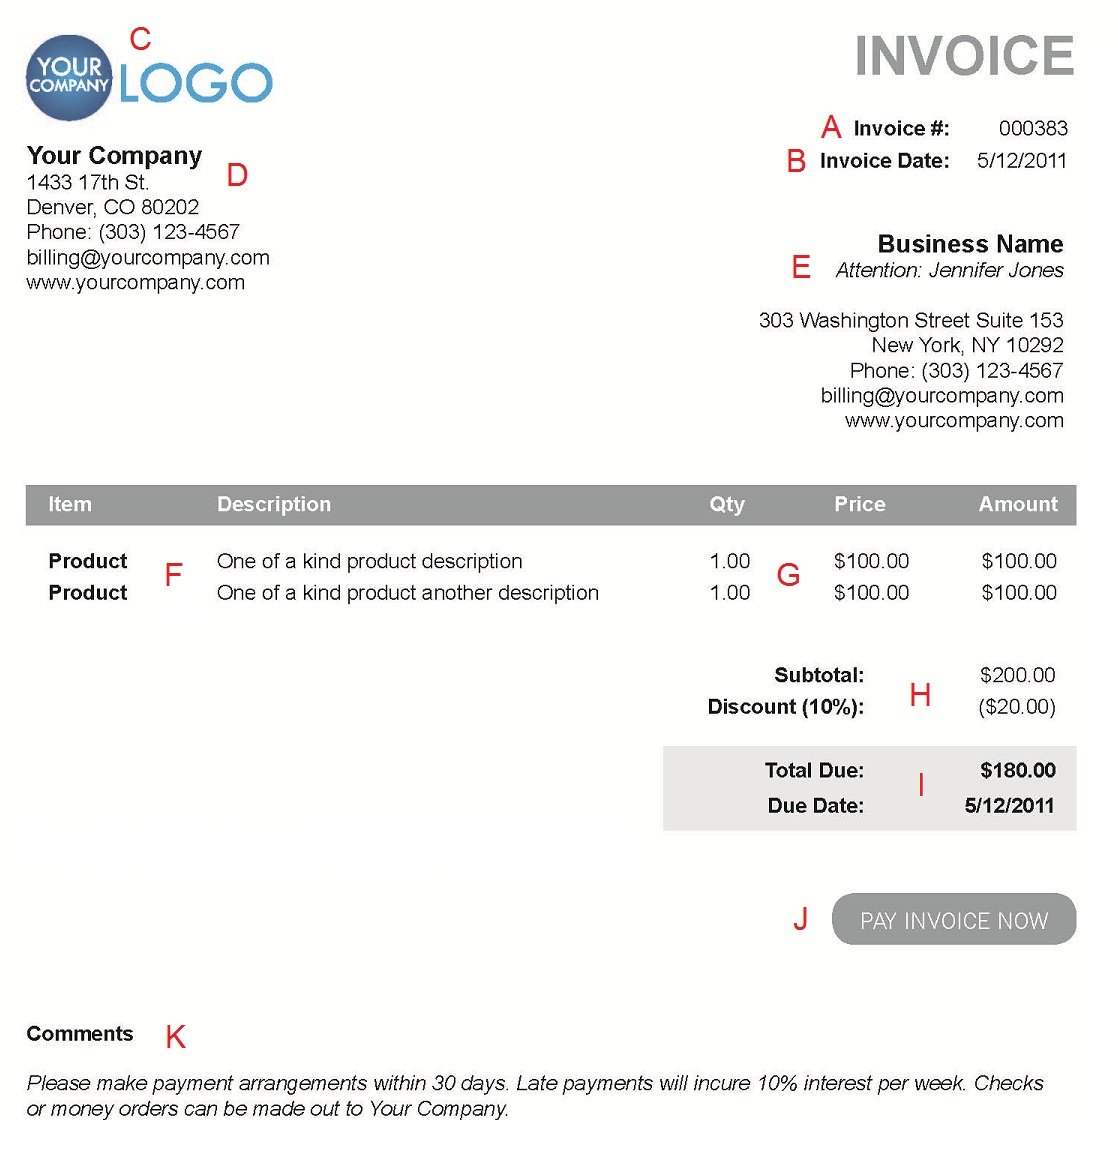 Shopdesignsus  Picturesque The  Different Sections Of An Electronic Payment Invoice With Goodlooking A  With Alluring Upon Receipt Of Payment Also I Receipt Notice In Addition Receipt Confirmed And E Ticket Receipt As Well As Walmart Return Policy On Electronics With Receipt Additionally Plumbing Receipt From Paysimplecom With Shopdesignsus  Goodlooking The  Different Sections Of An Electronic Payment Invoice With Alluring A  And Picturesque Upon Receipt Of Payment Also I Receipt Notice In Addition Receipt Confirmed From Paysimplecom